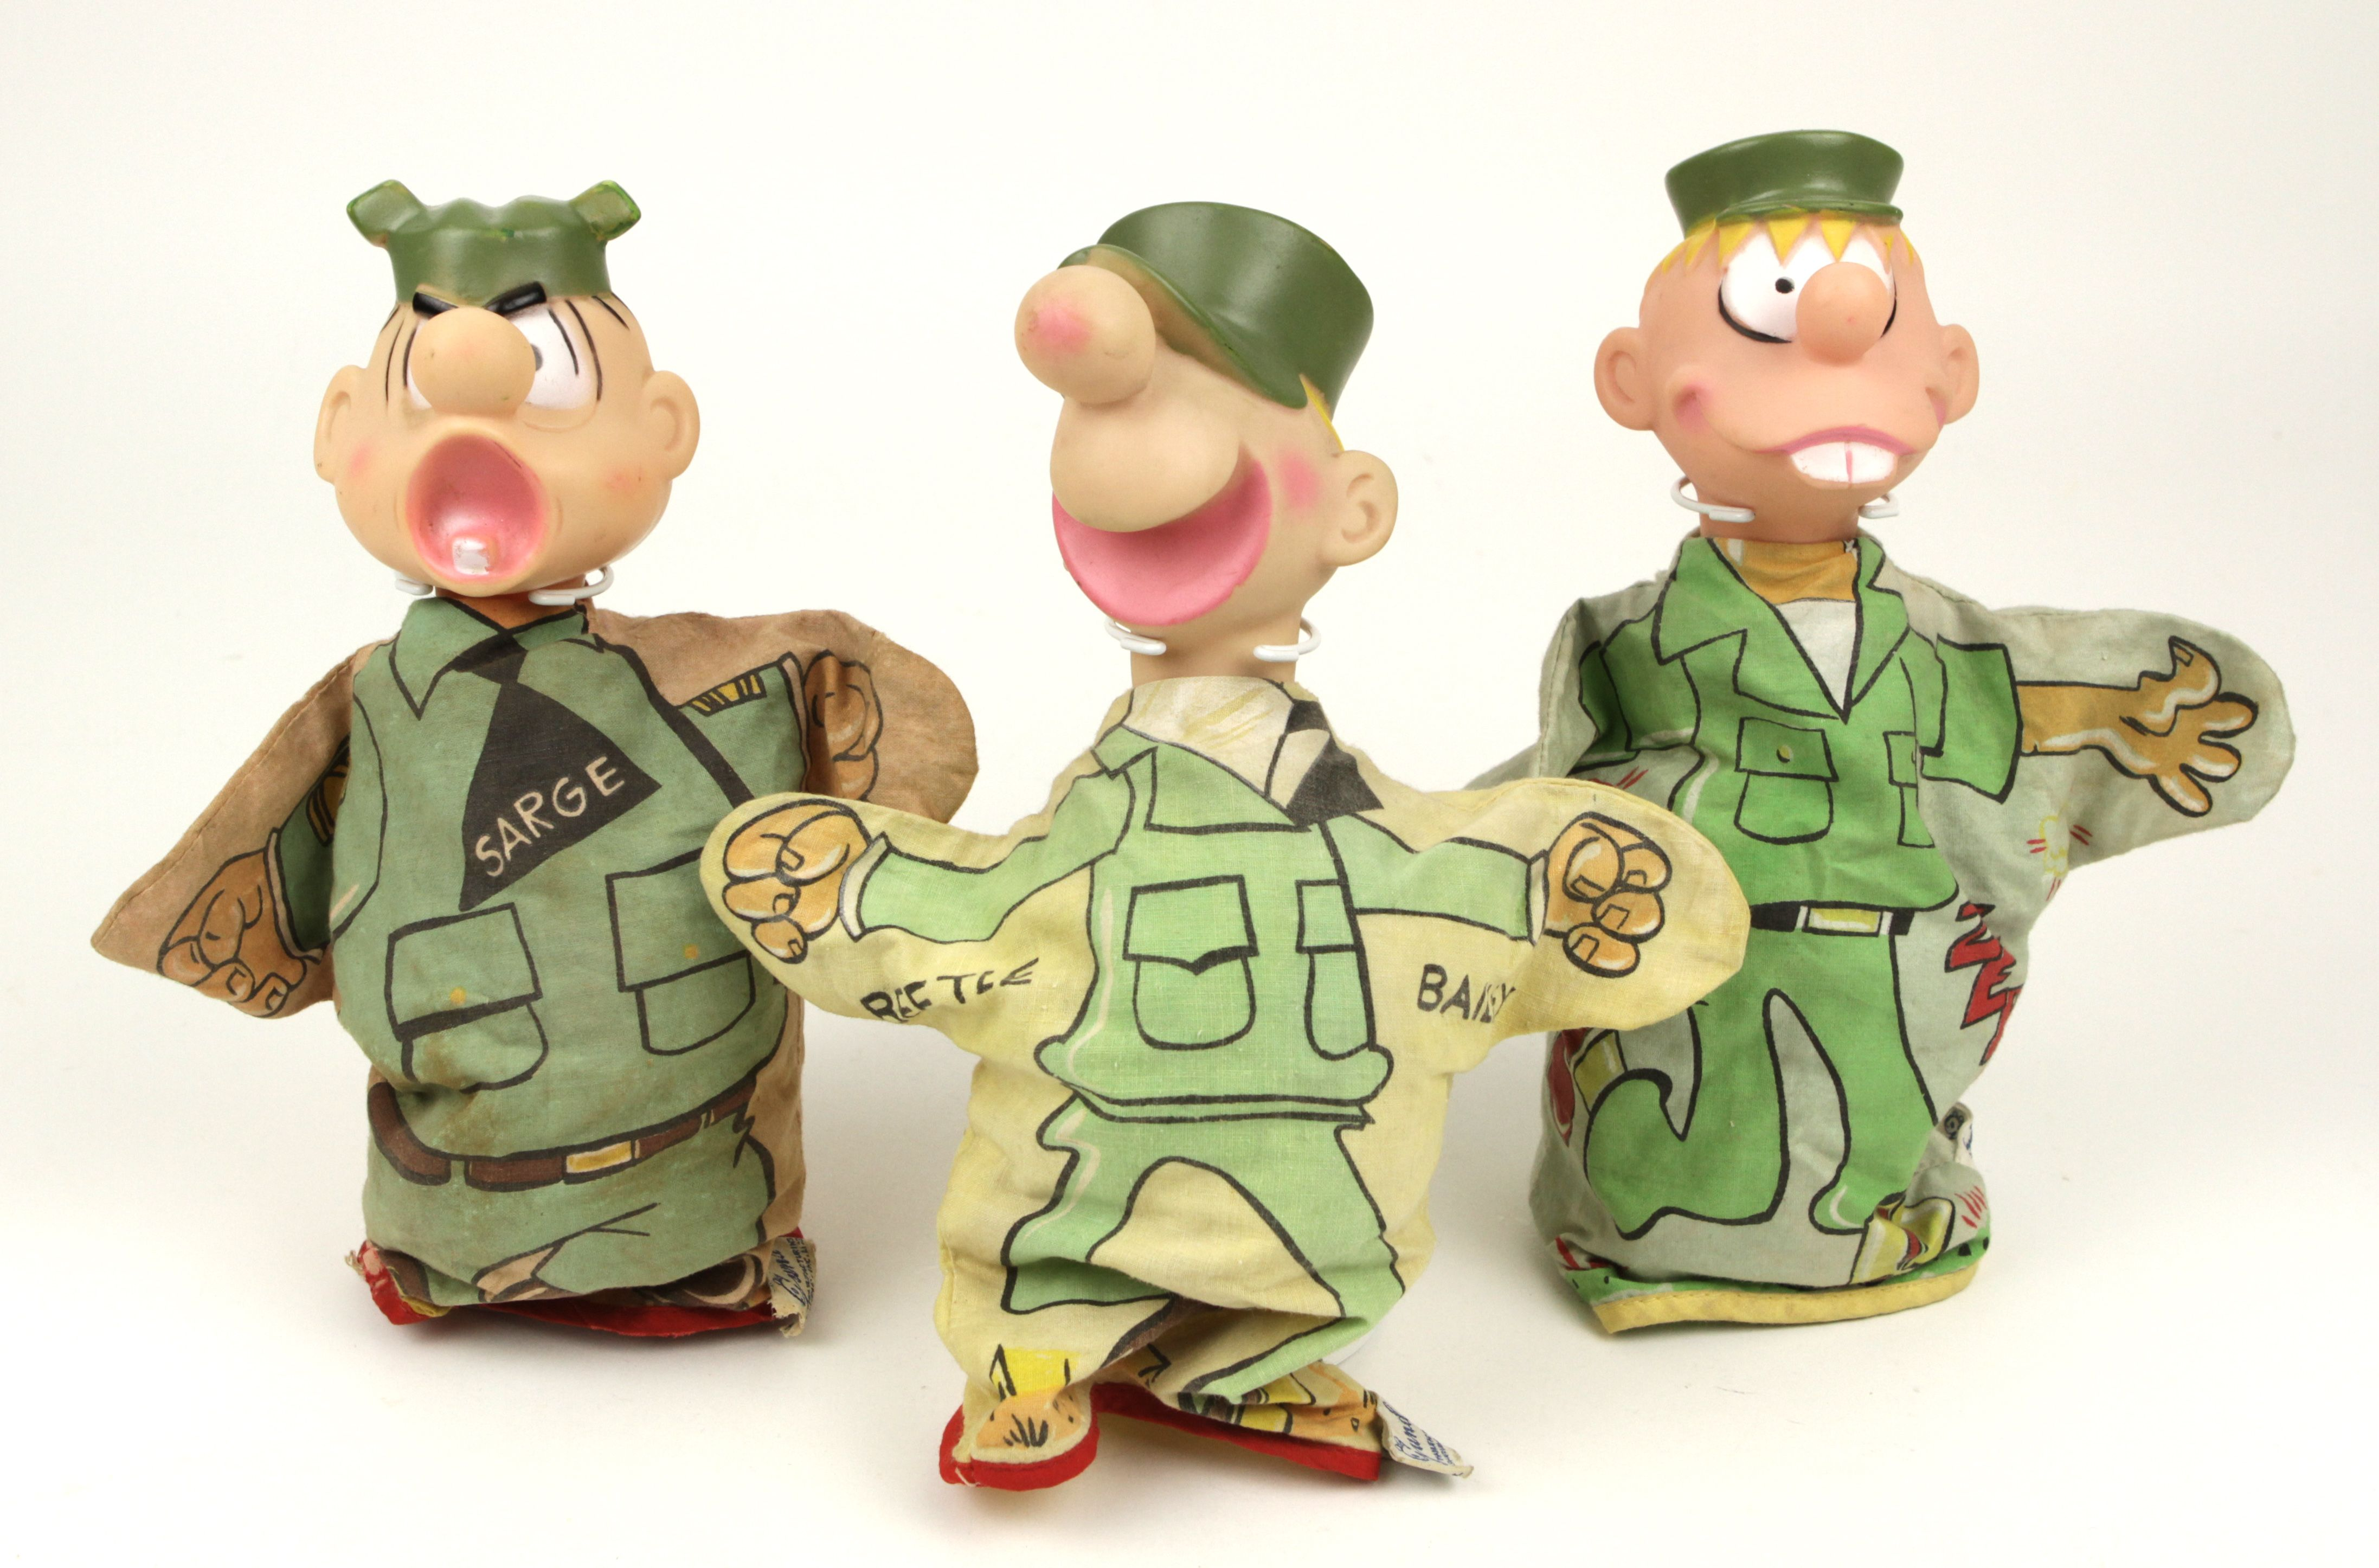 Sarge, Beetle and Zero hand puppets made by Gund in the early 1960s.